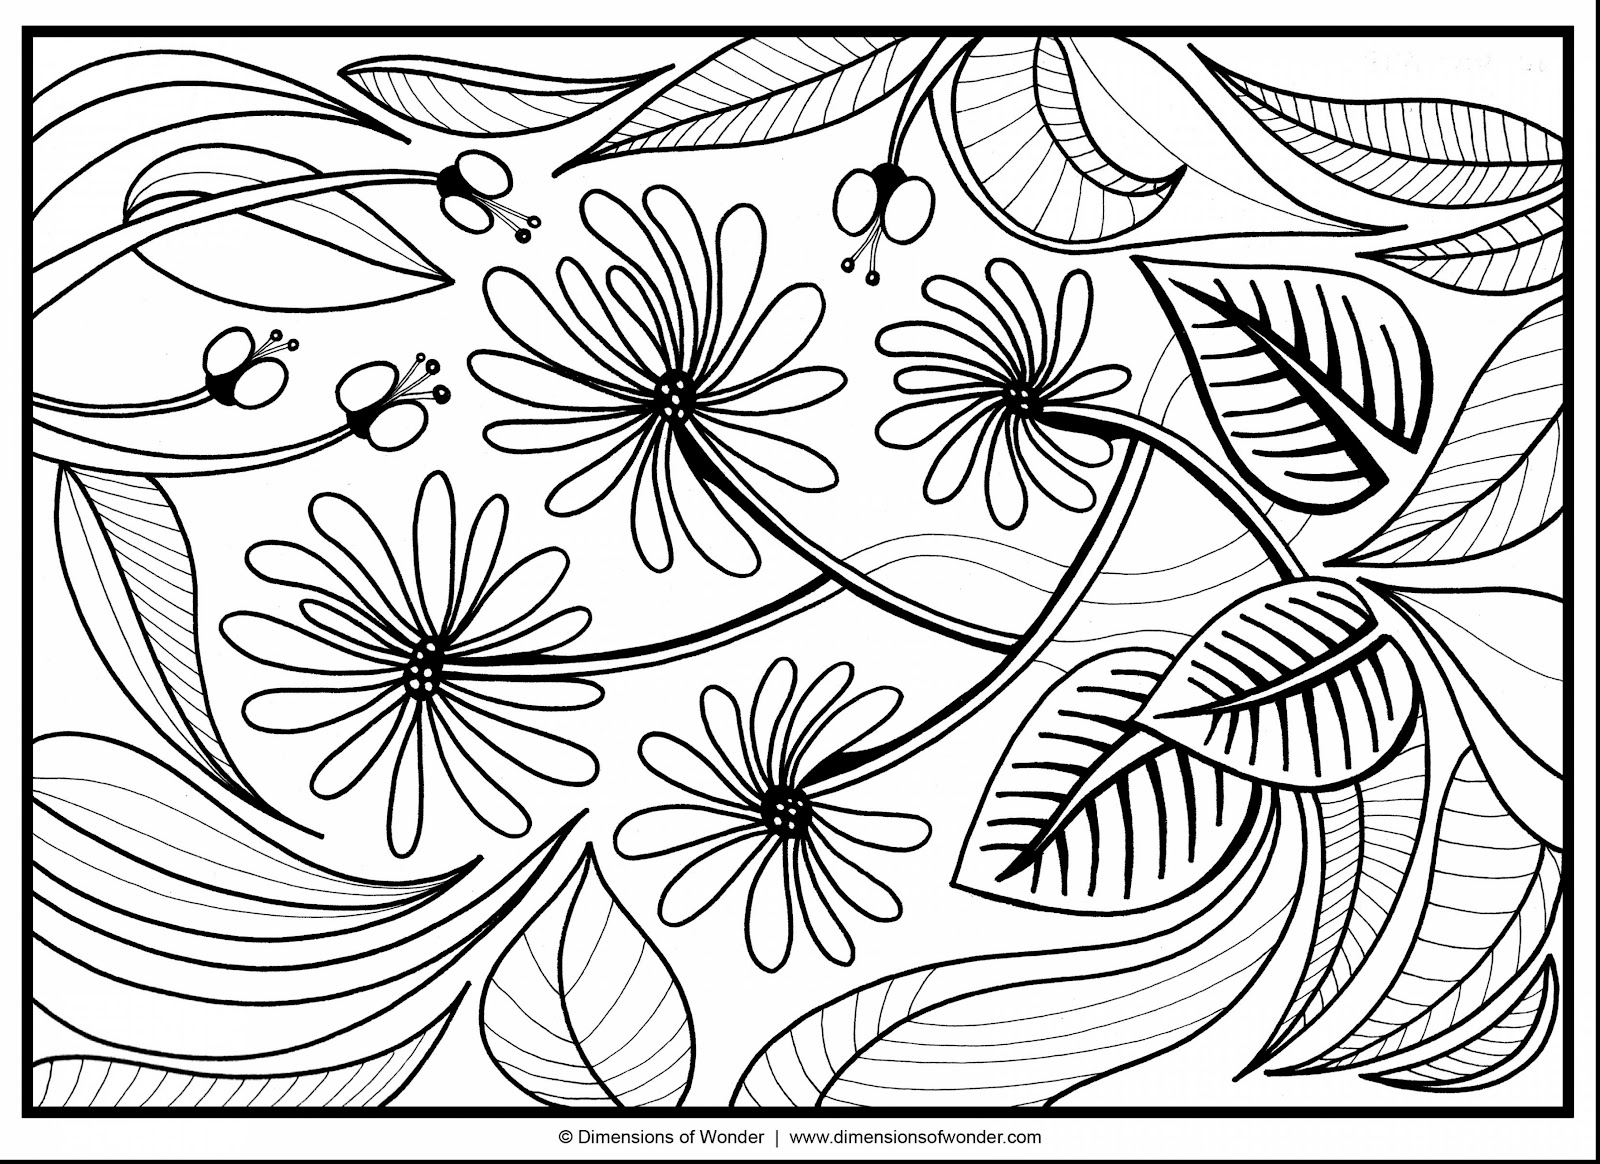 coloring pages abstract - hd abstract flower coloring pages images